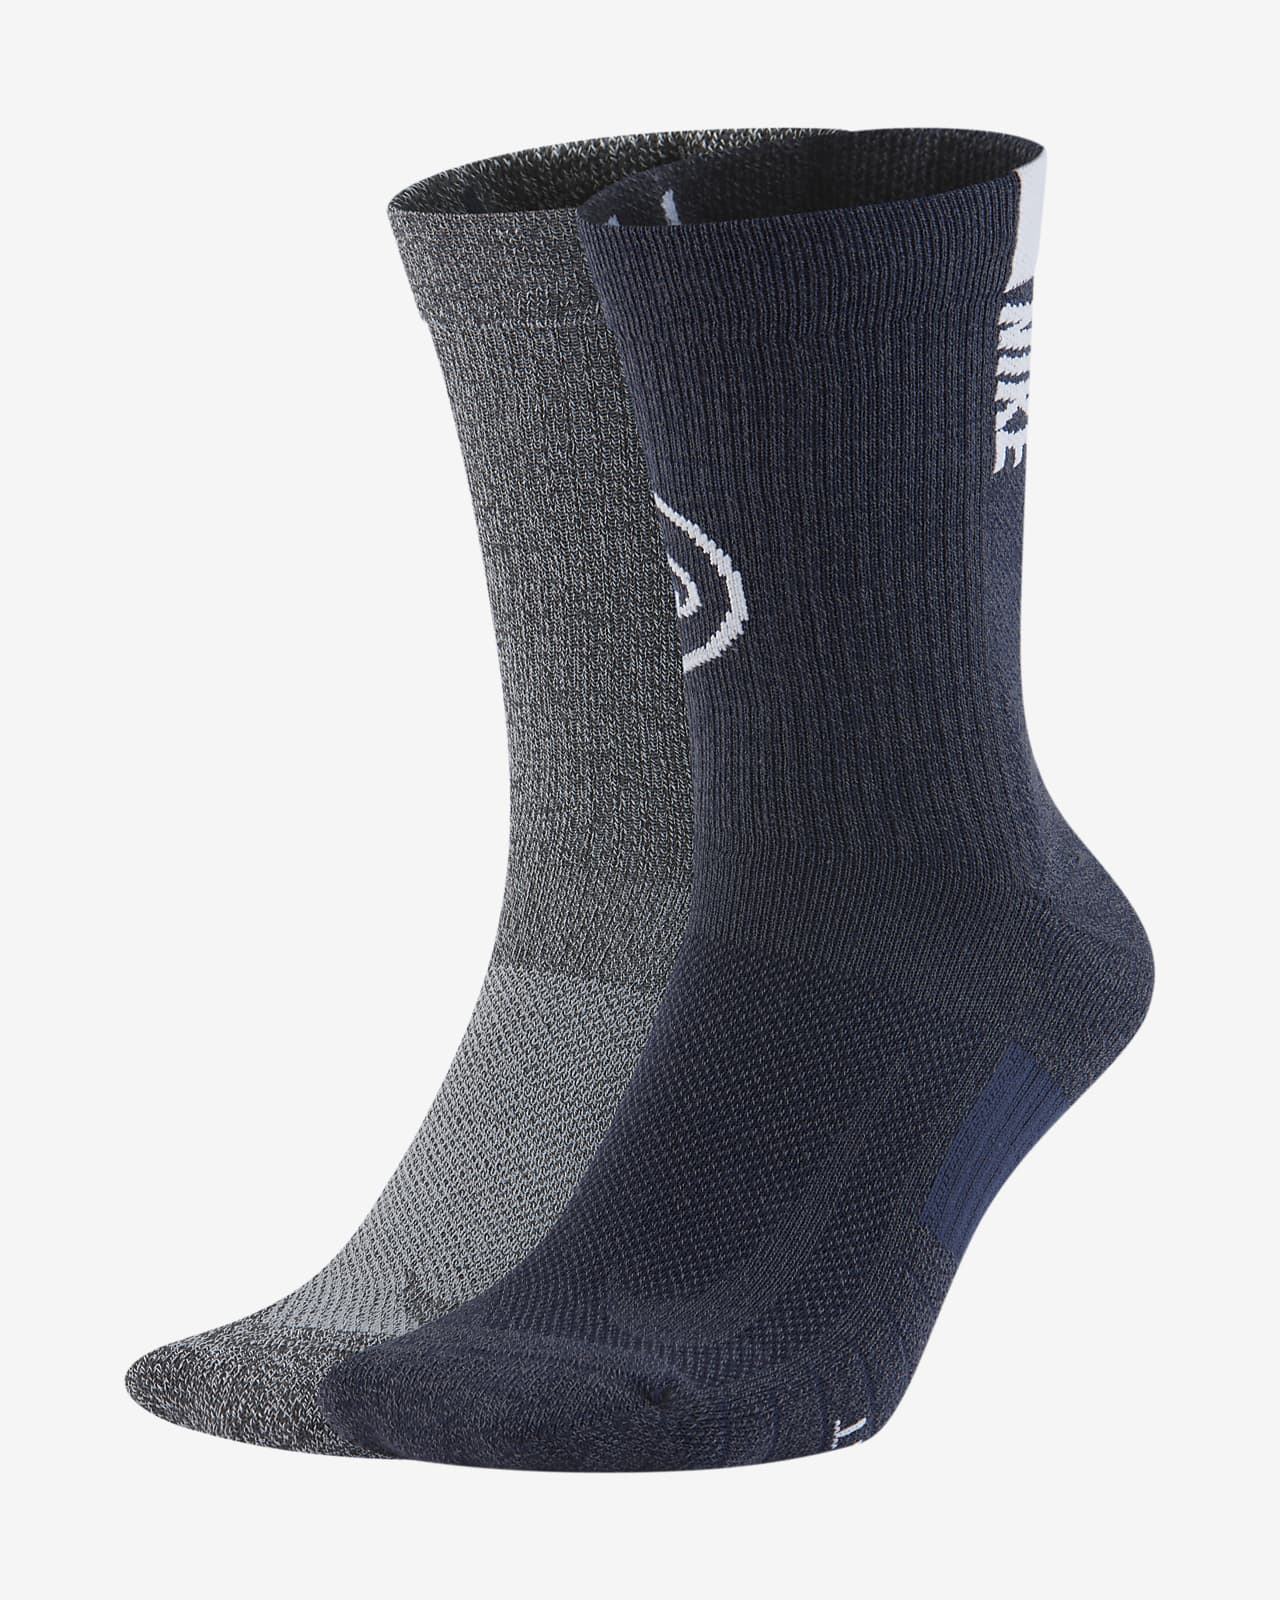 Nike College Multiplier (Penn State) Crew Socks (2 Pairs)